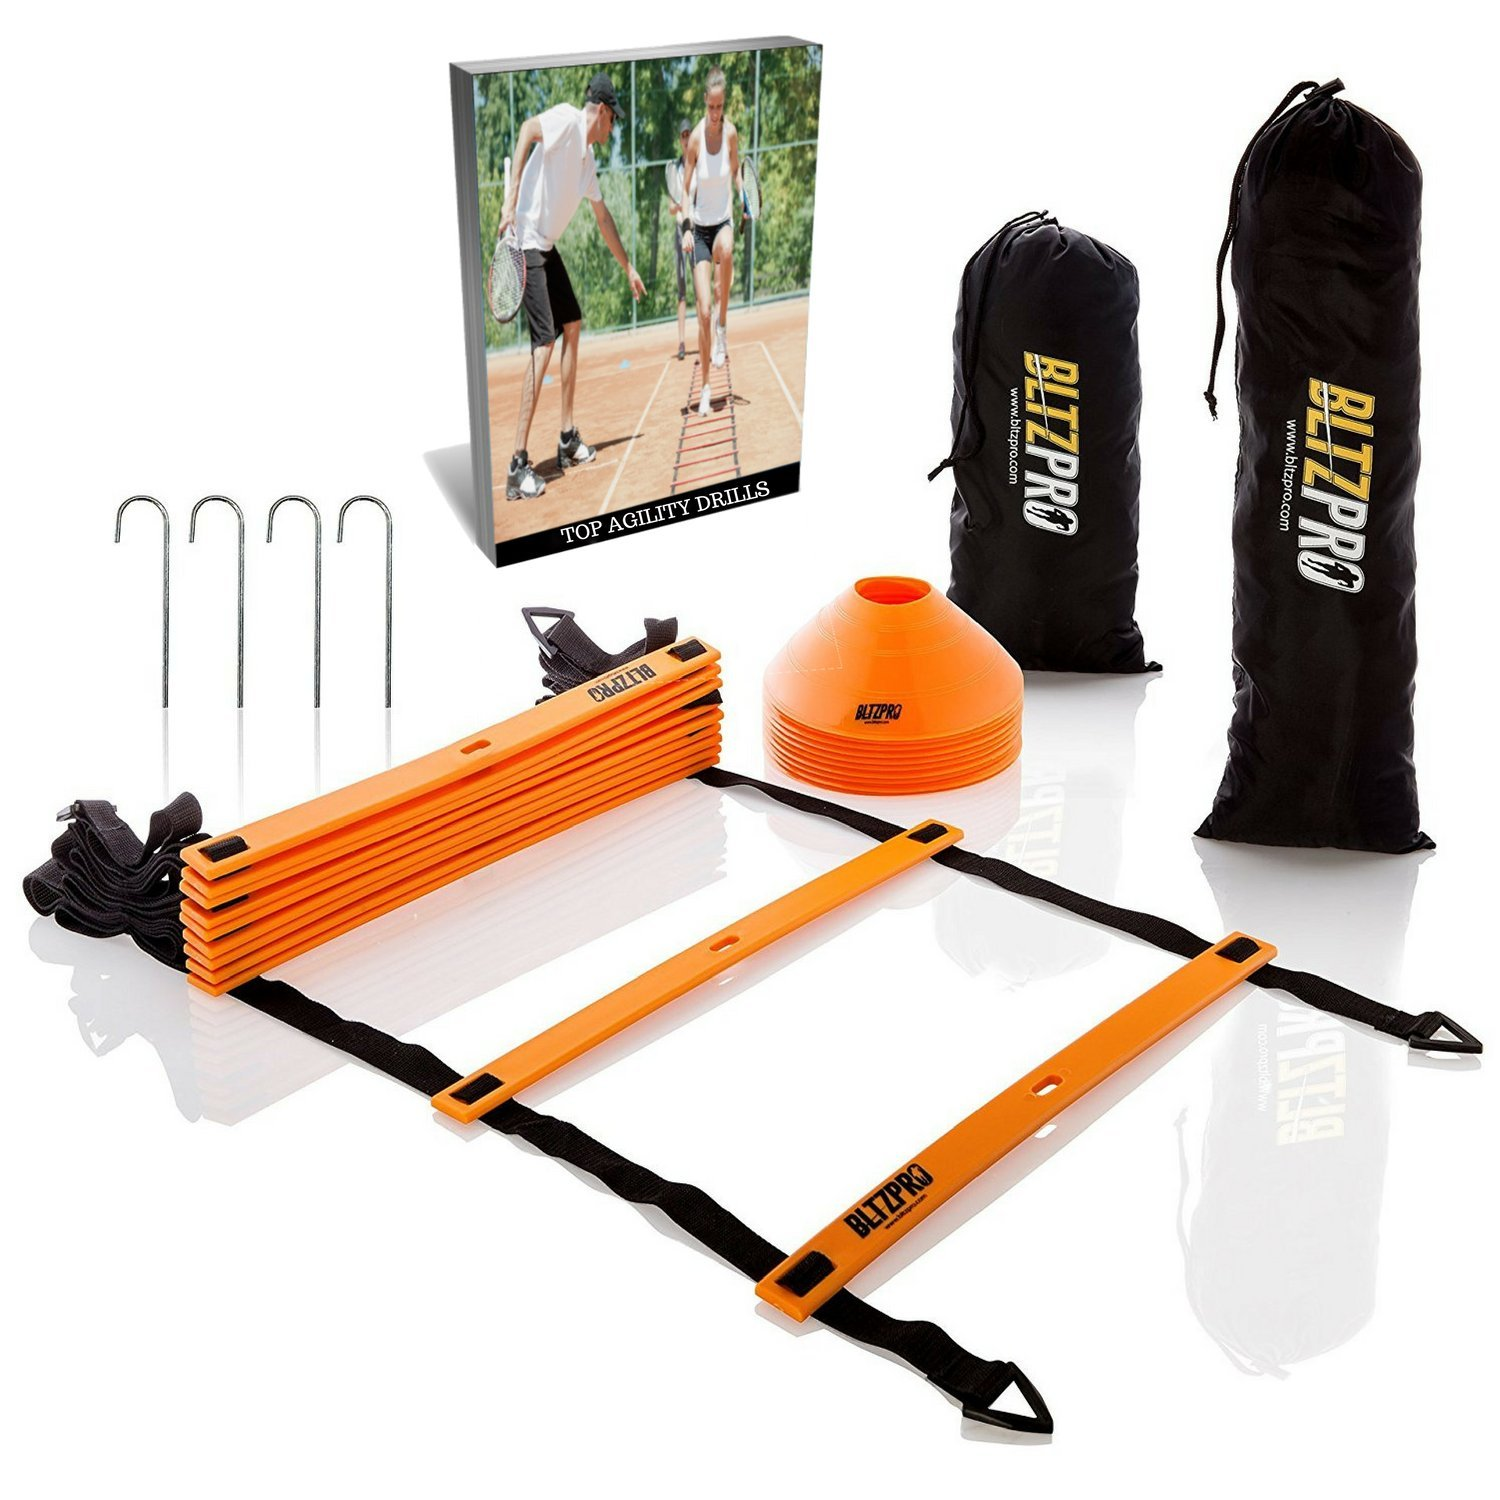 Bltzpro Football and Soccer Training Equipment – Cones & Agility Ladder Speed Practice kit for Kids and Coaches…